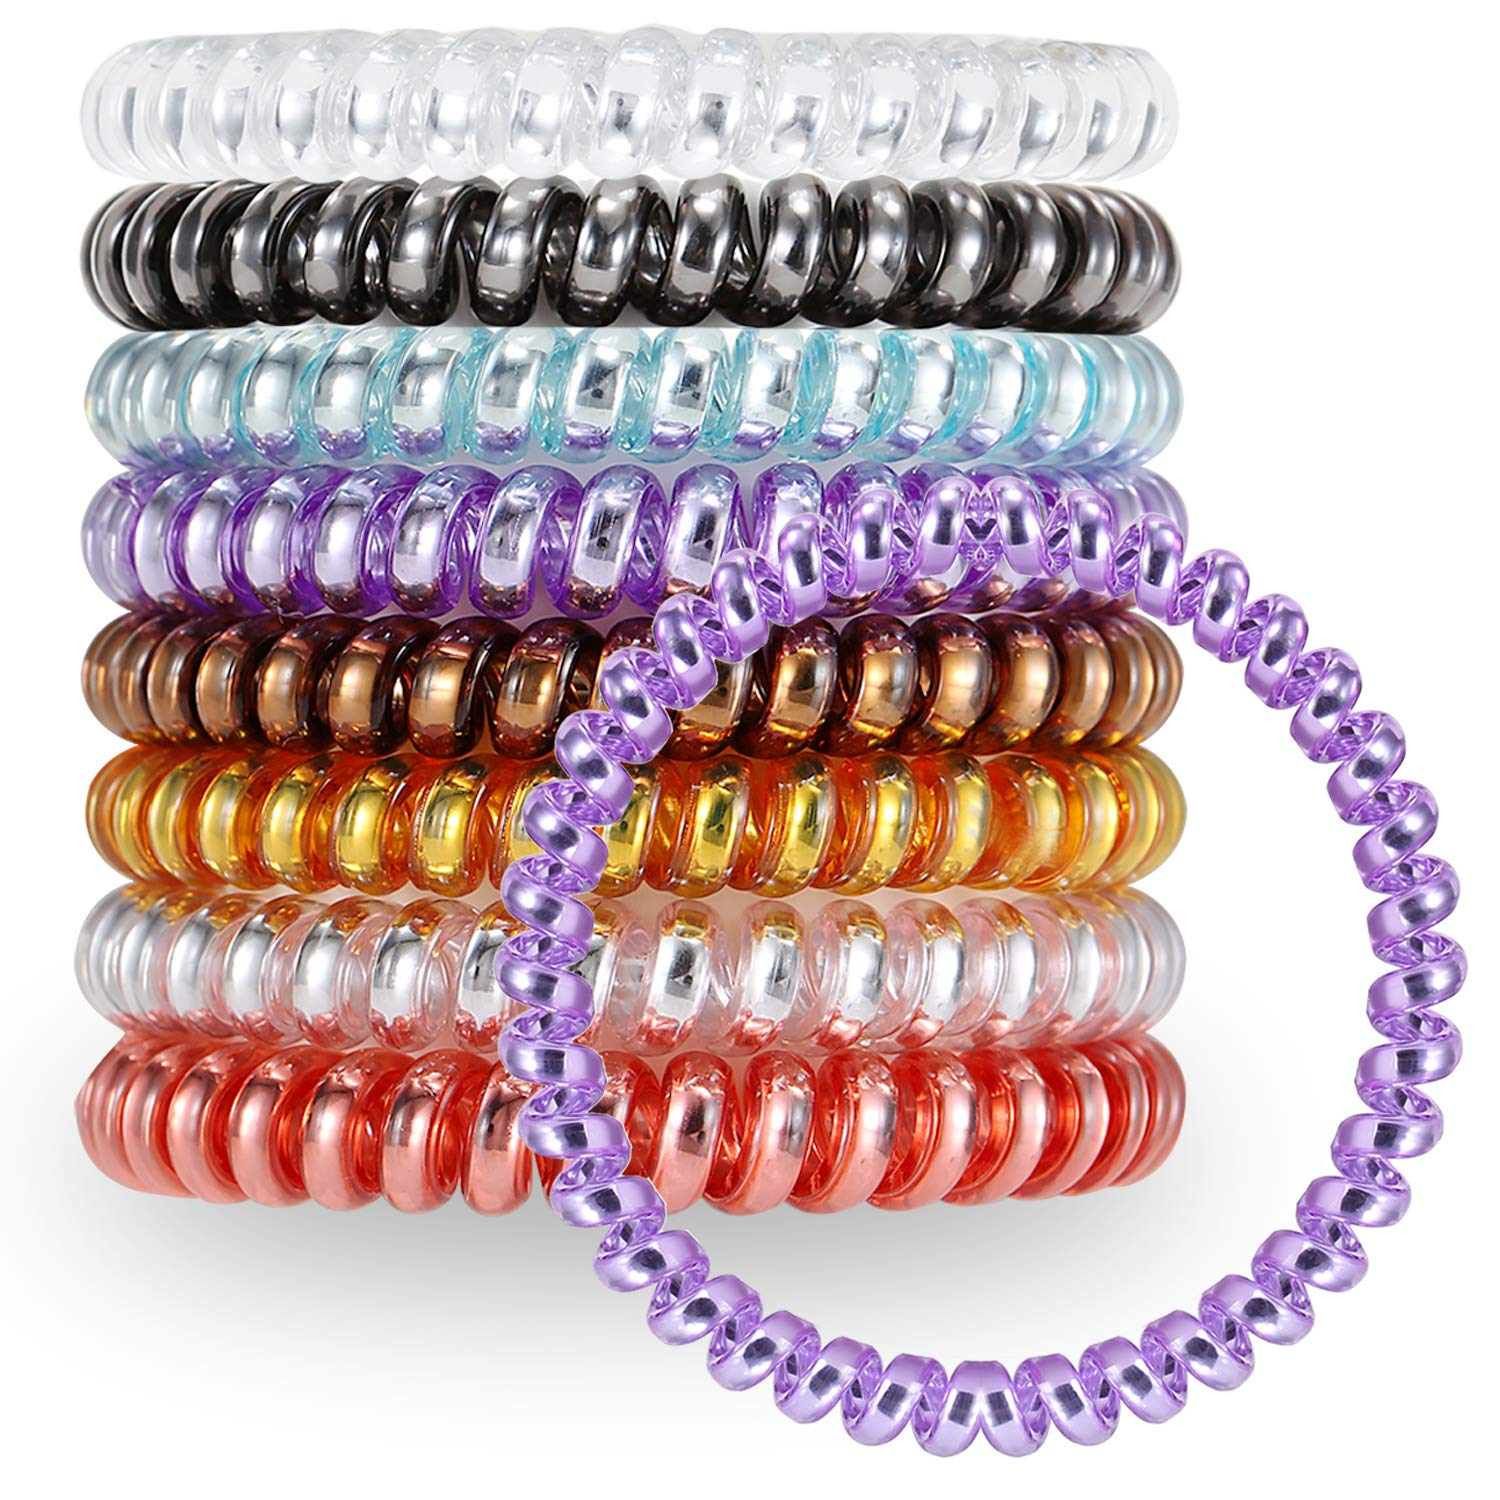 VEGOLS 8 PCS Spiral Hair Ties No Crease, Colorful Spiral Coil Hair Ties for Women Girls, Traceless Phone Cord Hair Ties Elastics Hair Accessories - 8 Mixed Color